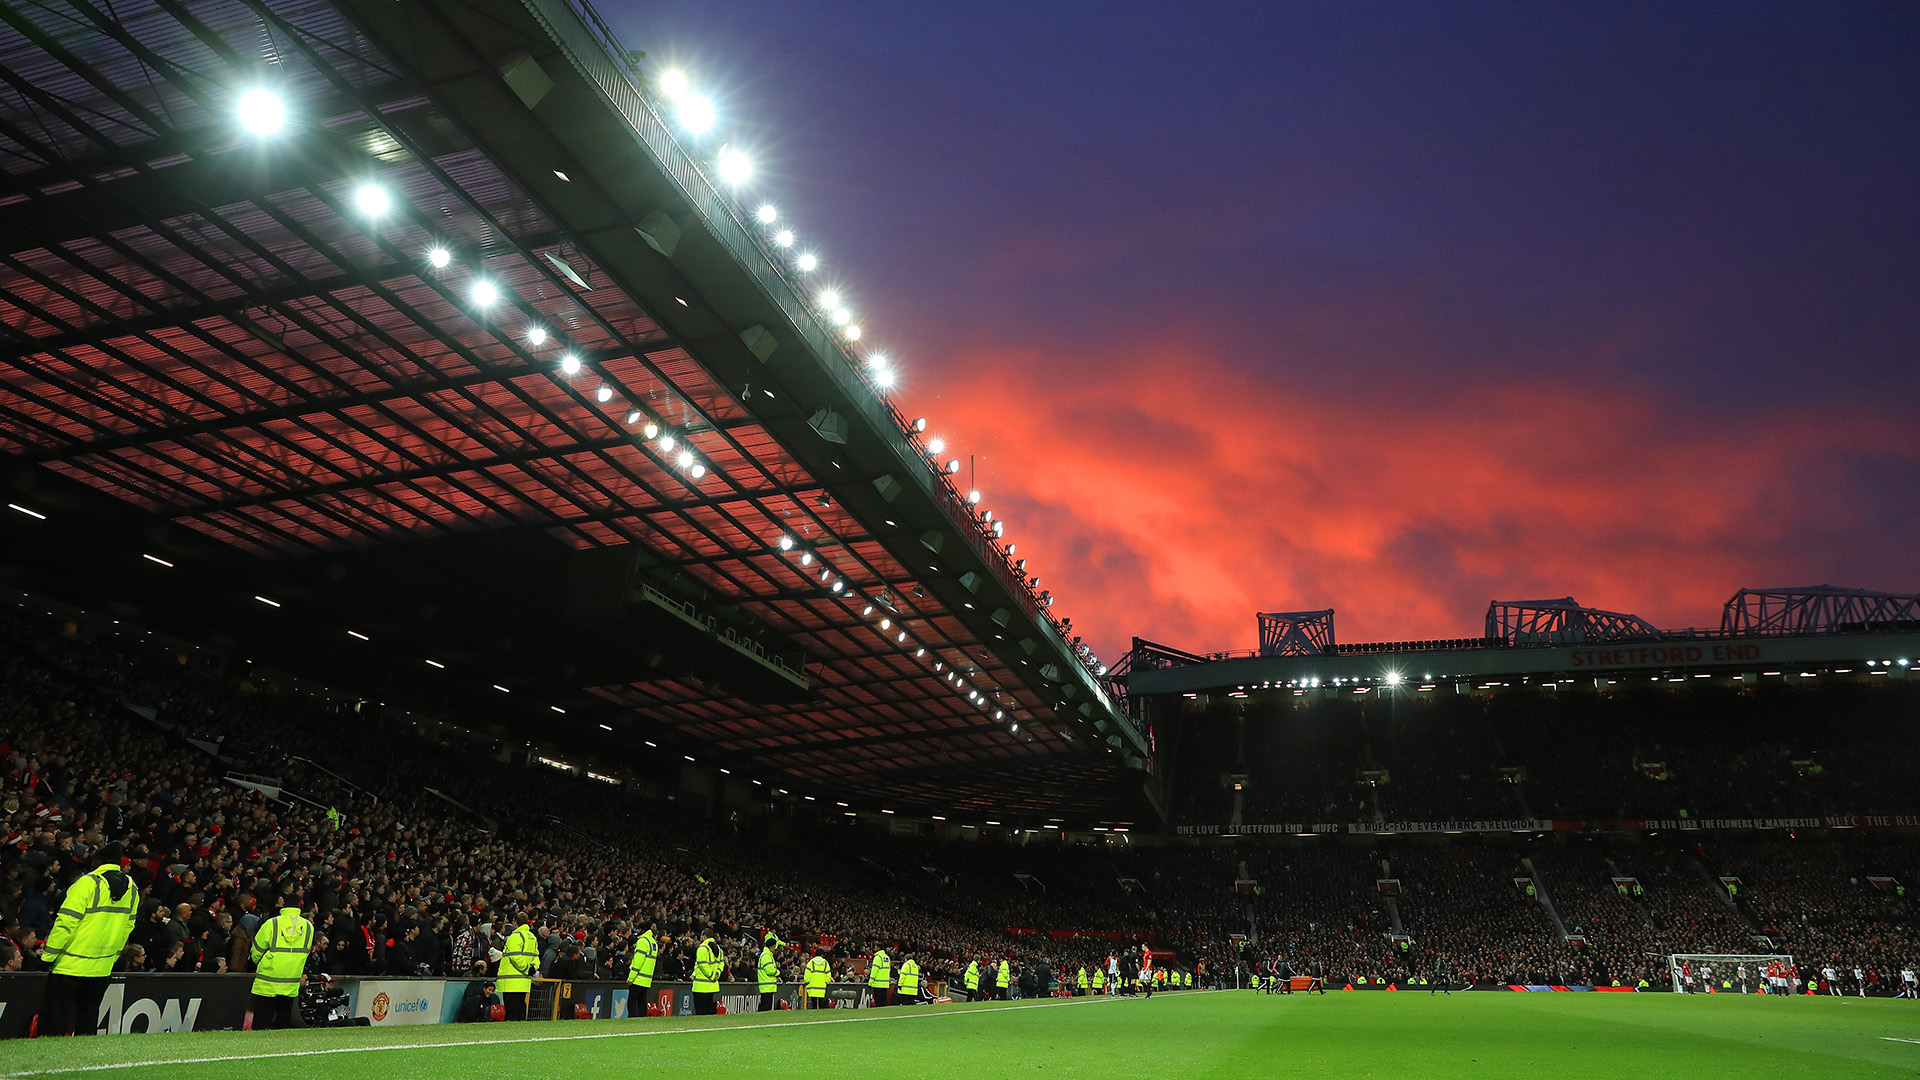 Manchester United confirm fire scare at Old Trafford ...